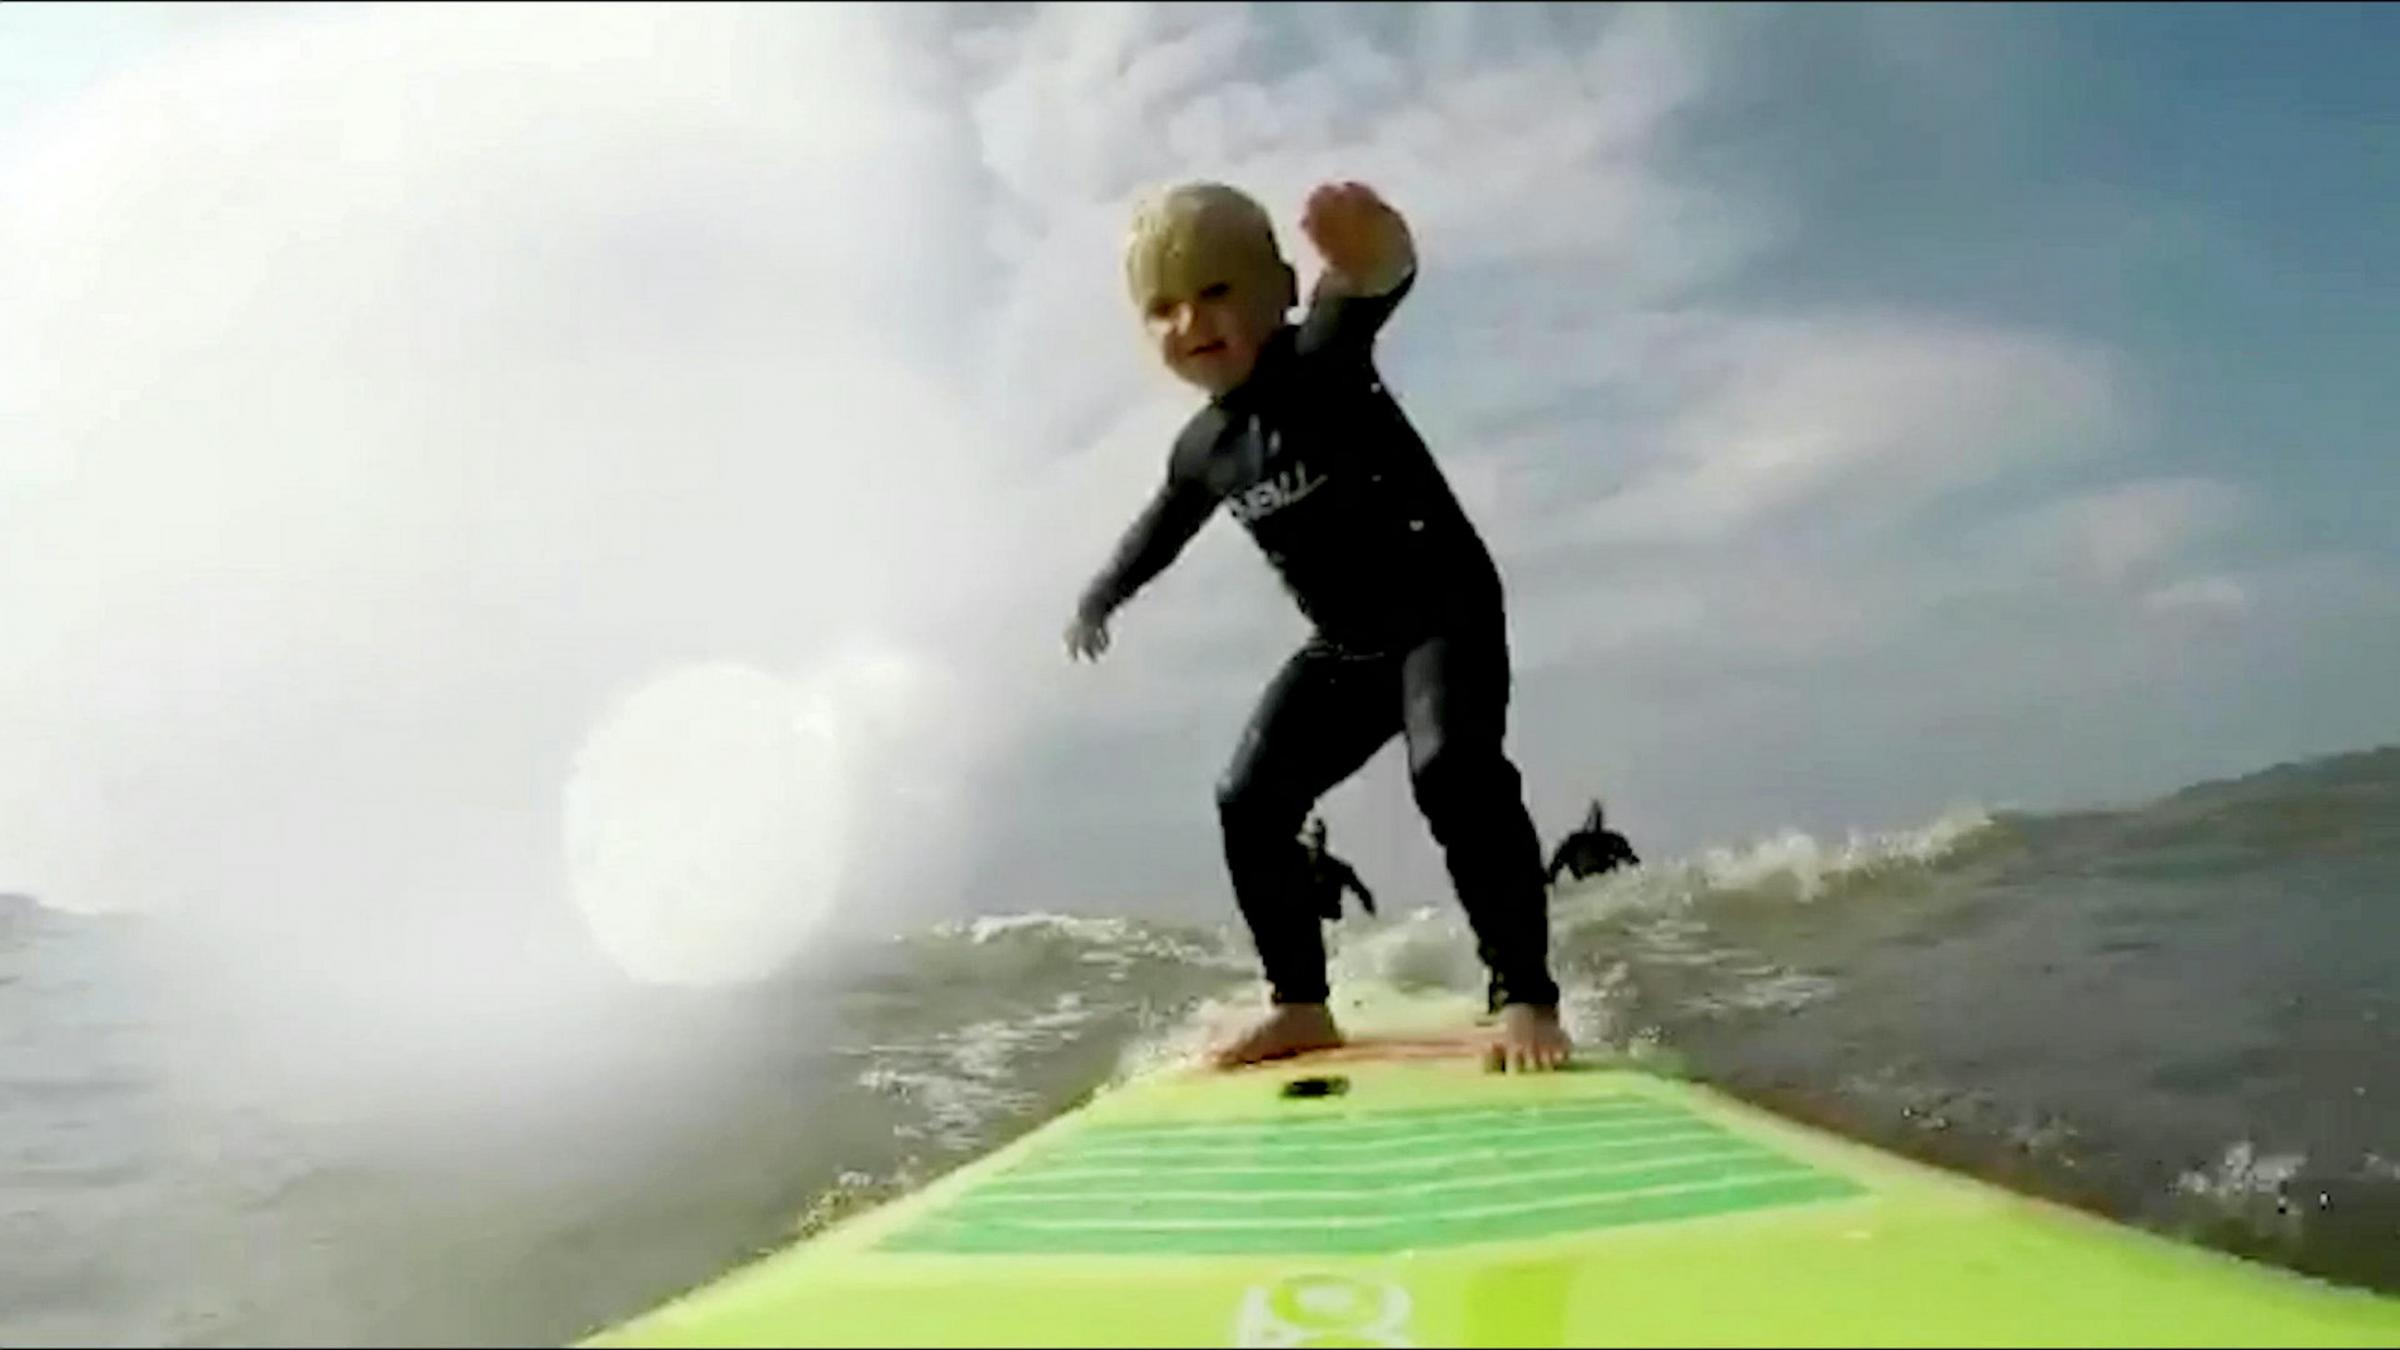 WONDERFUL UK NEWS: Video footage shows four-year-old surfing the waves